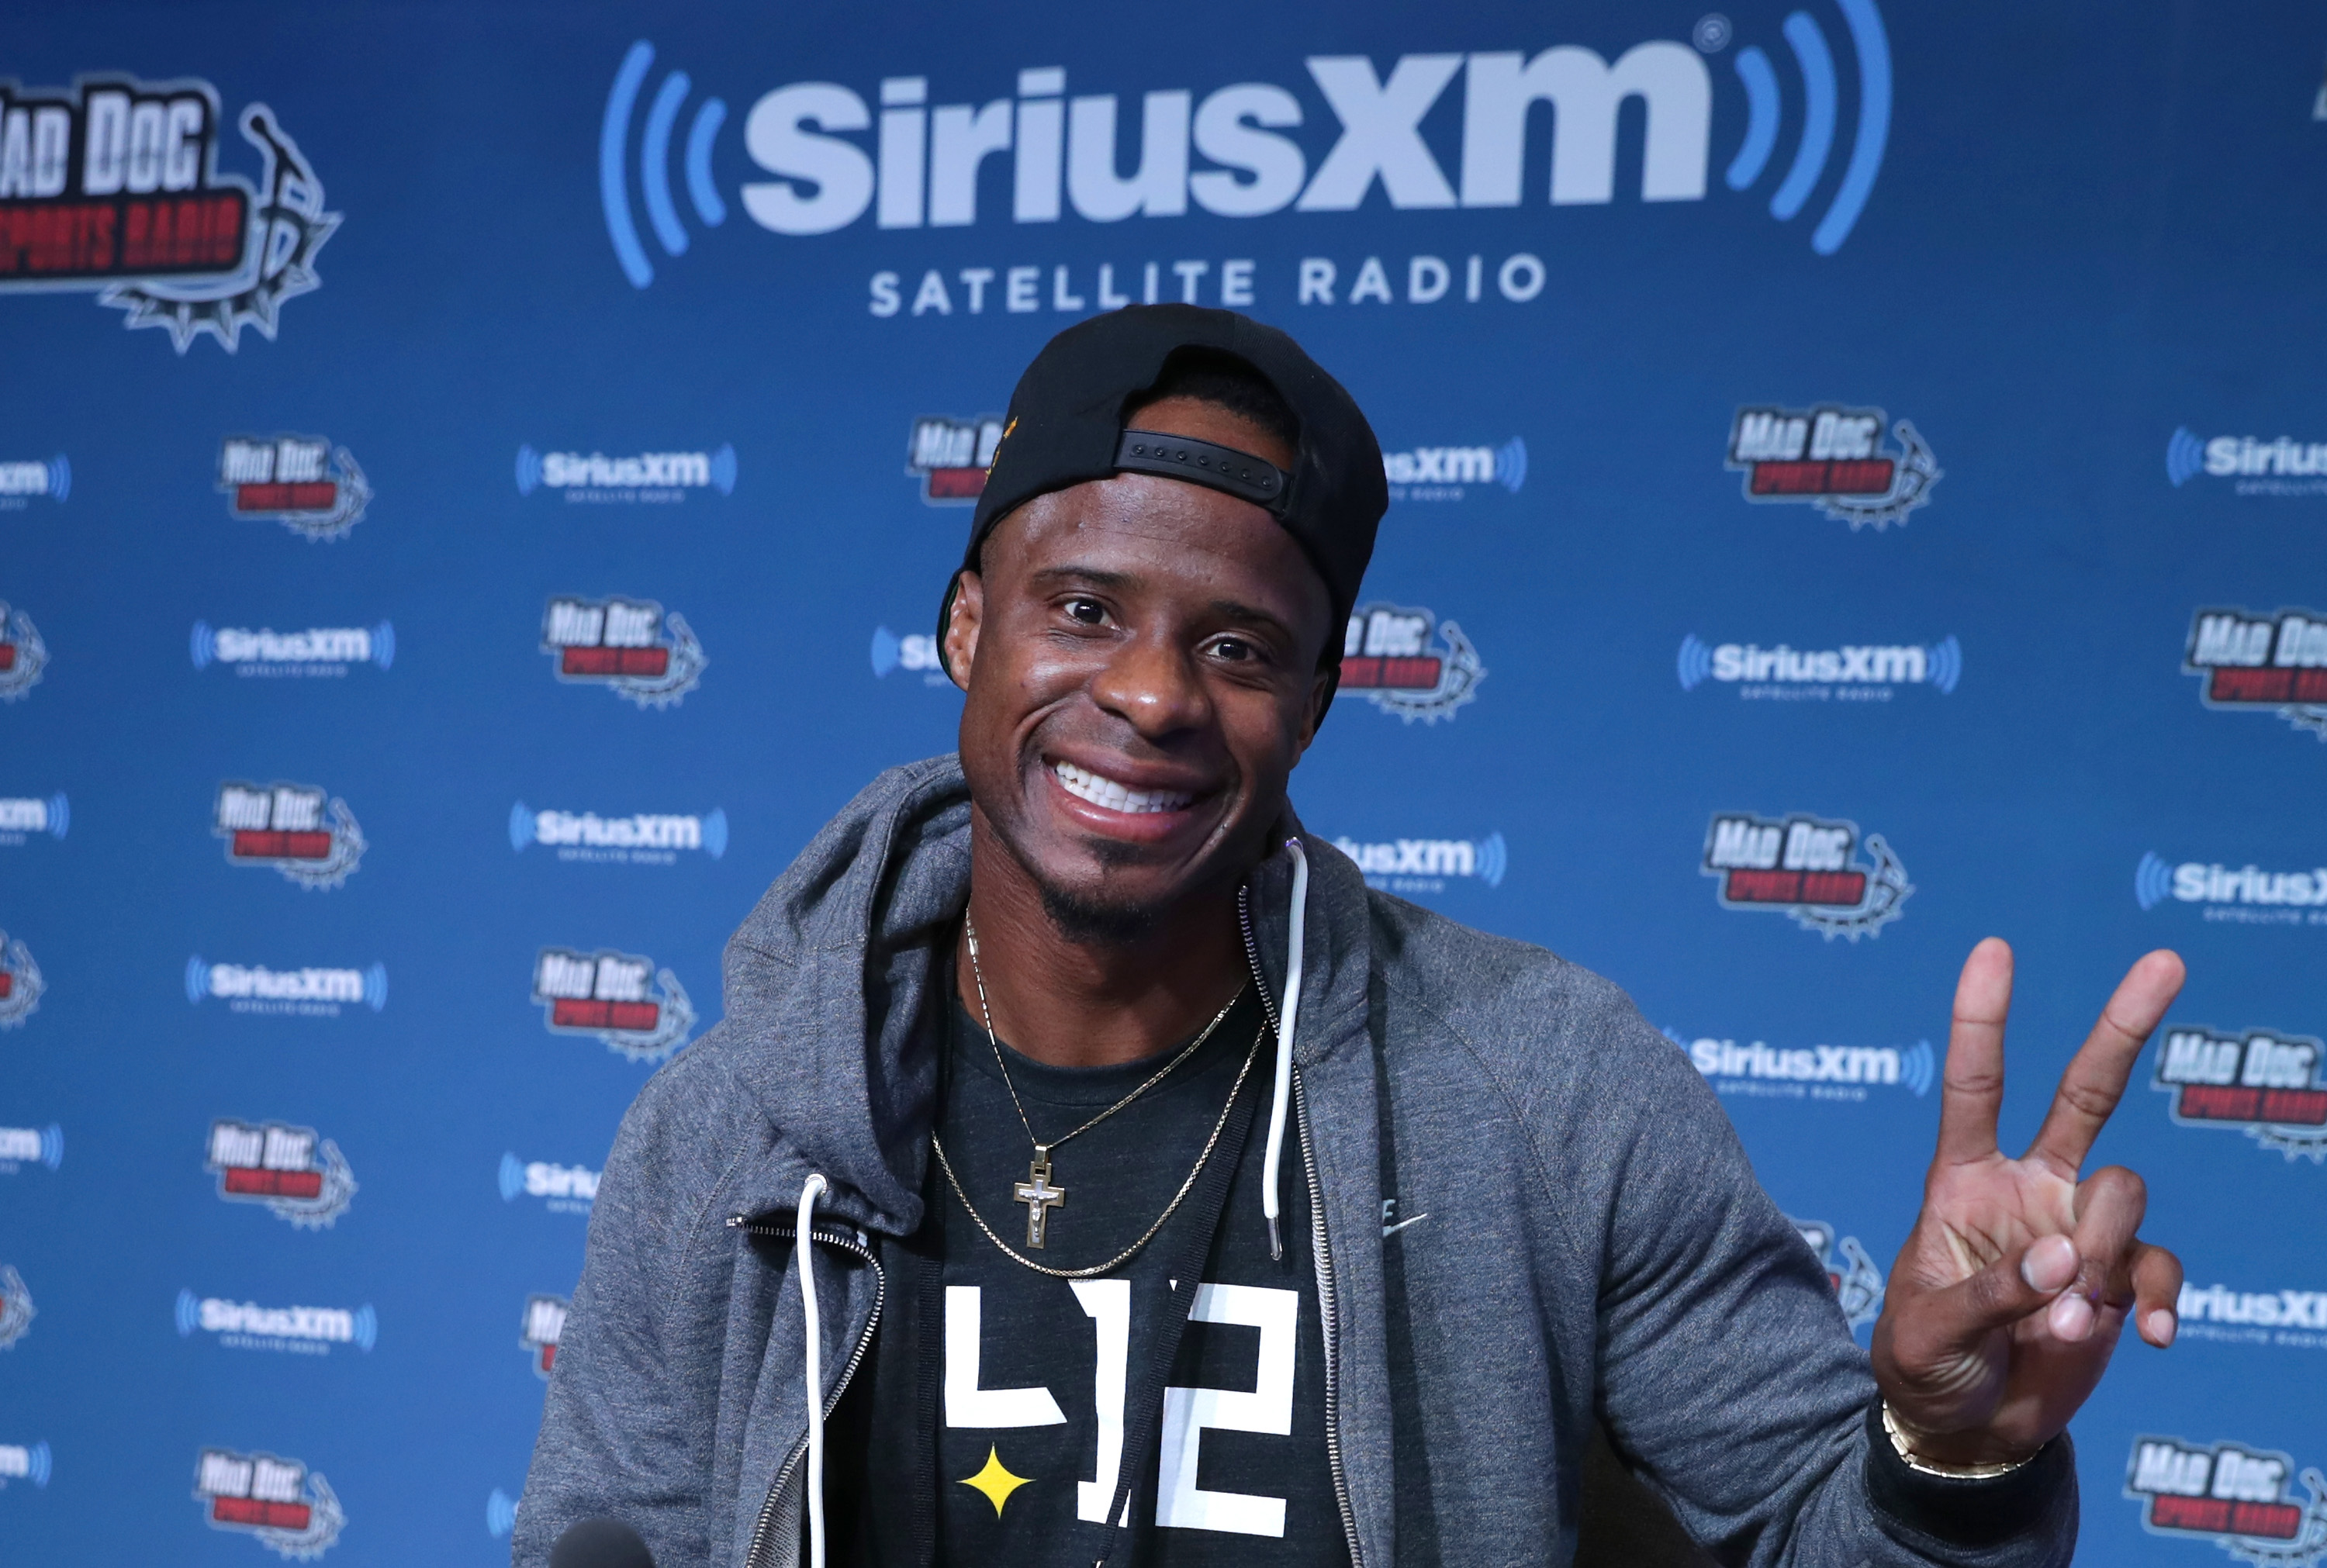 Former NFL player Ike Taylor visits the SiriusXM set at Super Bowl LI Radio Row at the George R. Brown Convention Center on February 3, 2017 in Houston, Texas.